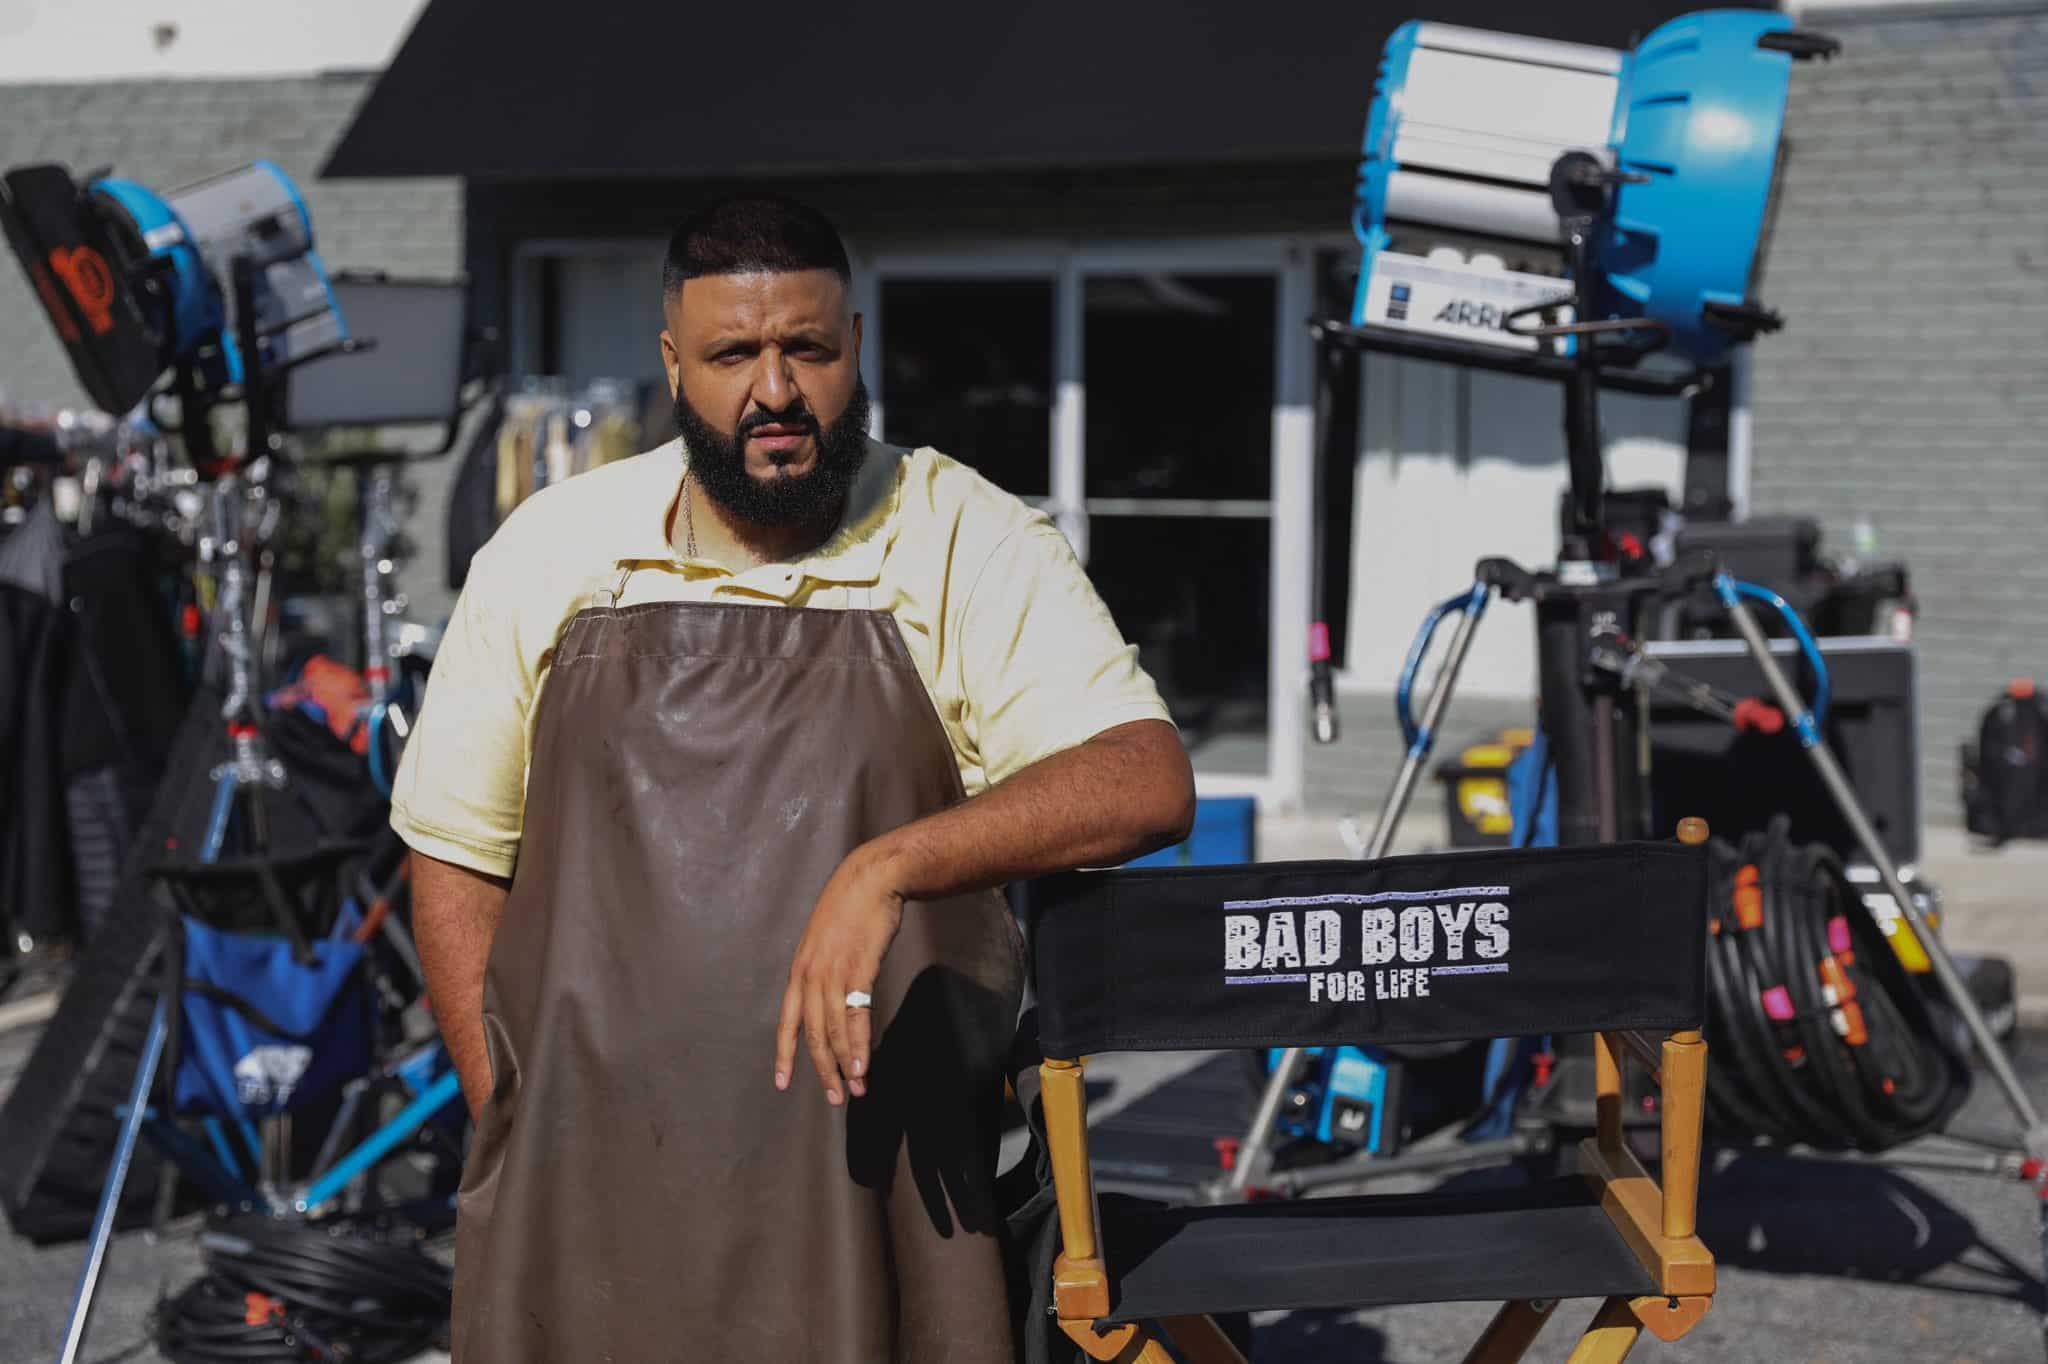 dj khaled bad boys for life image